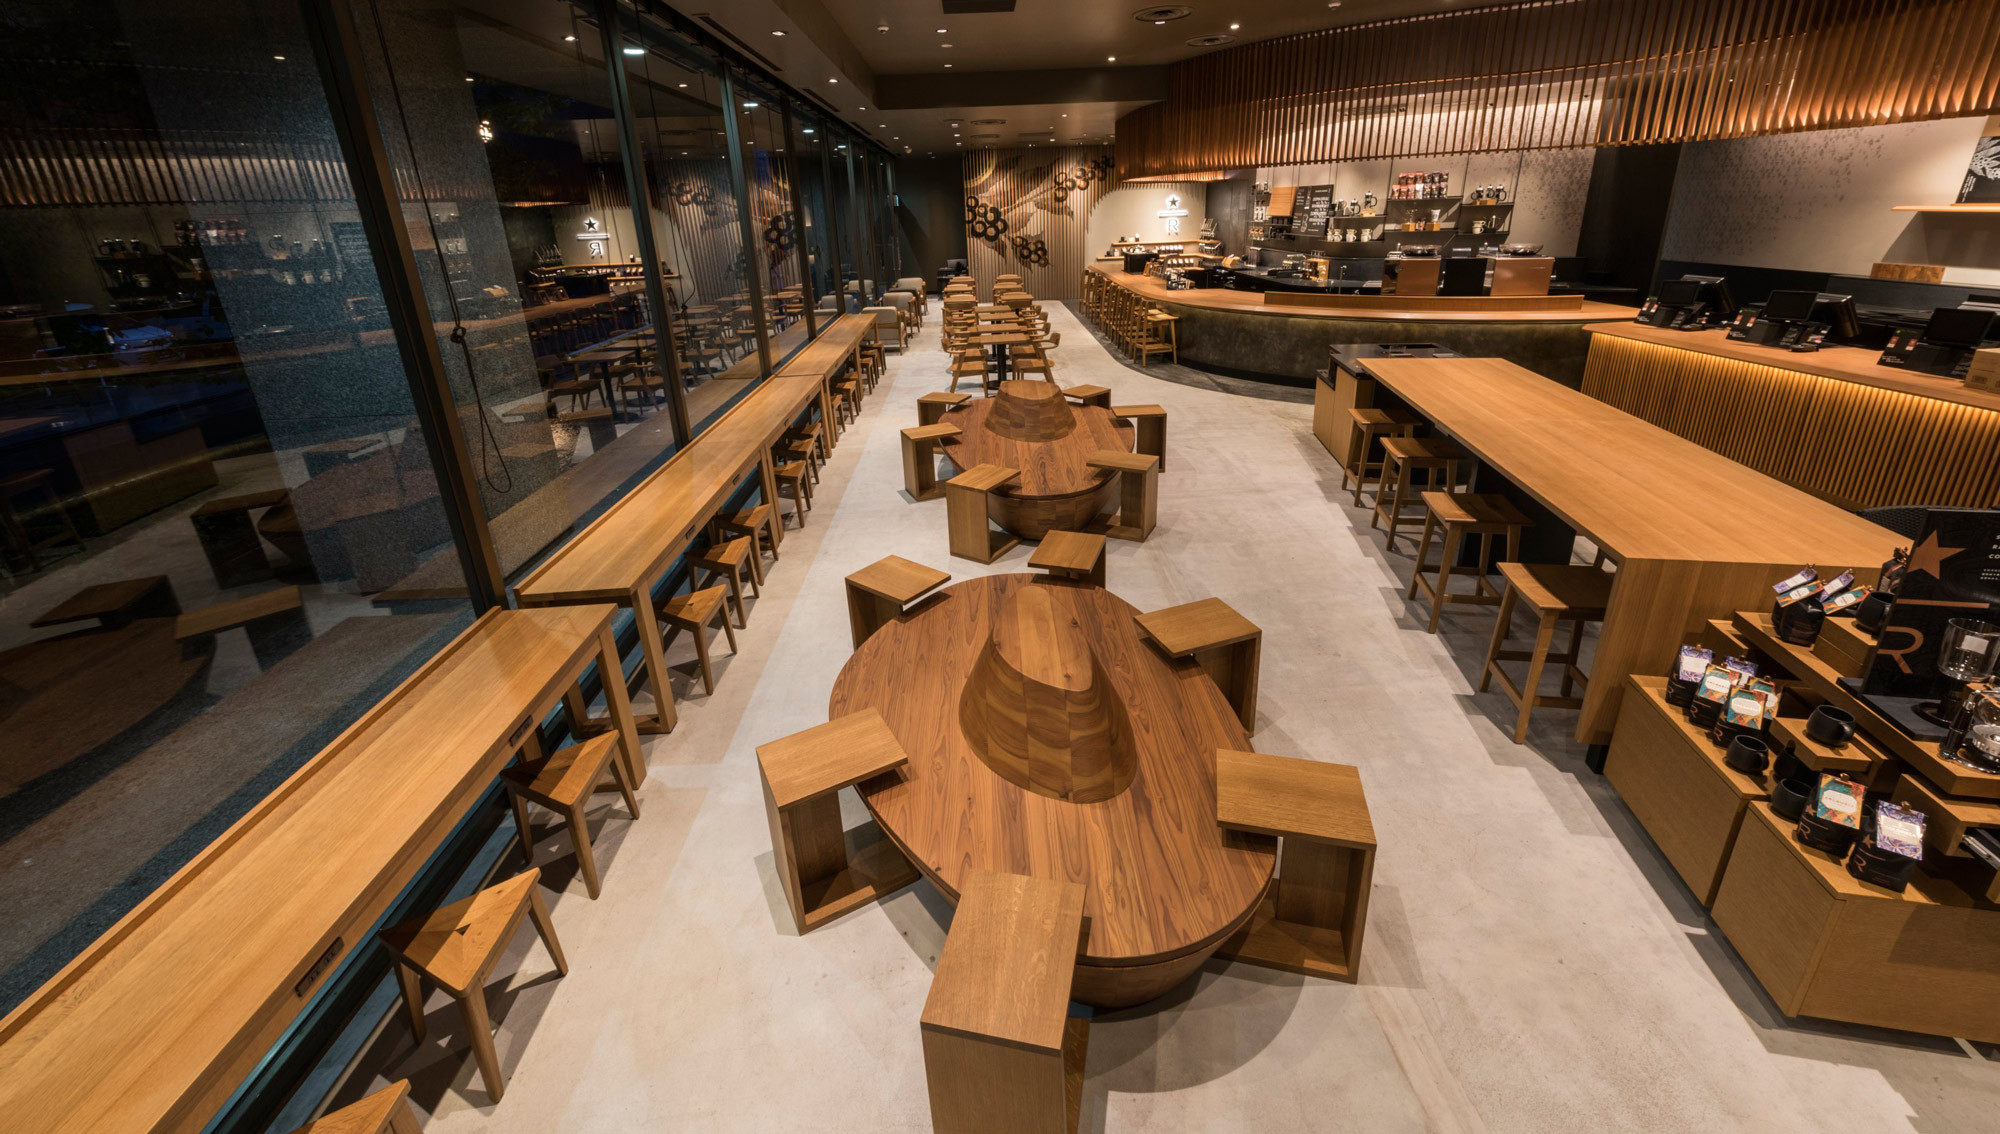 How Starbucks Uses BIM And VR To Bring Local Spirit To Its